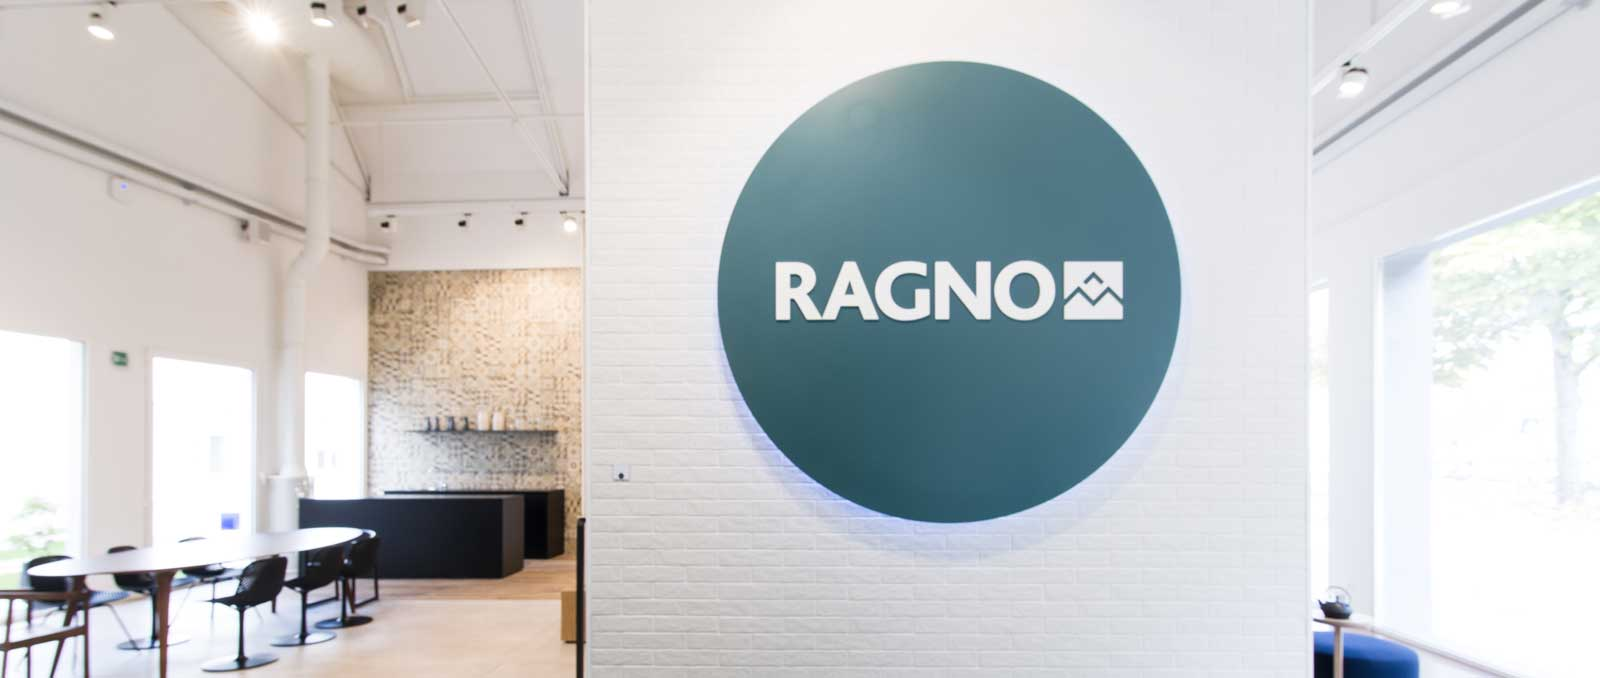 Exploring the Ragno showroom, and materials that make a home